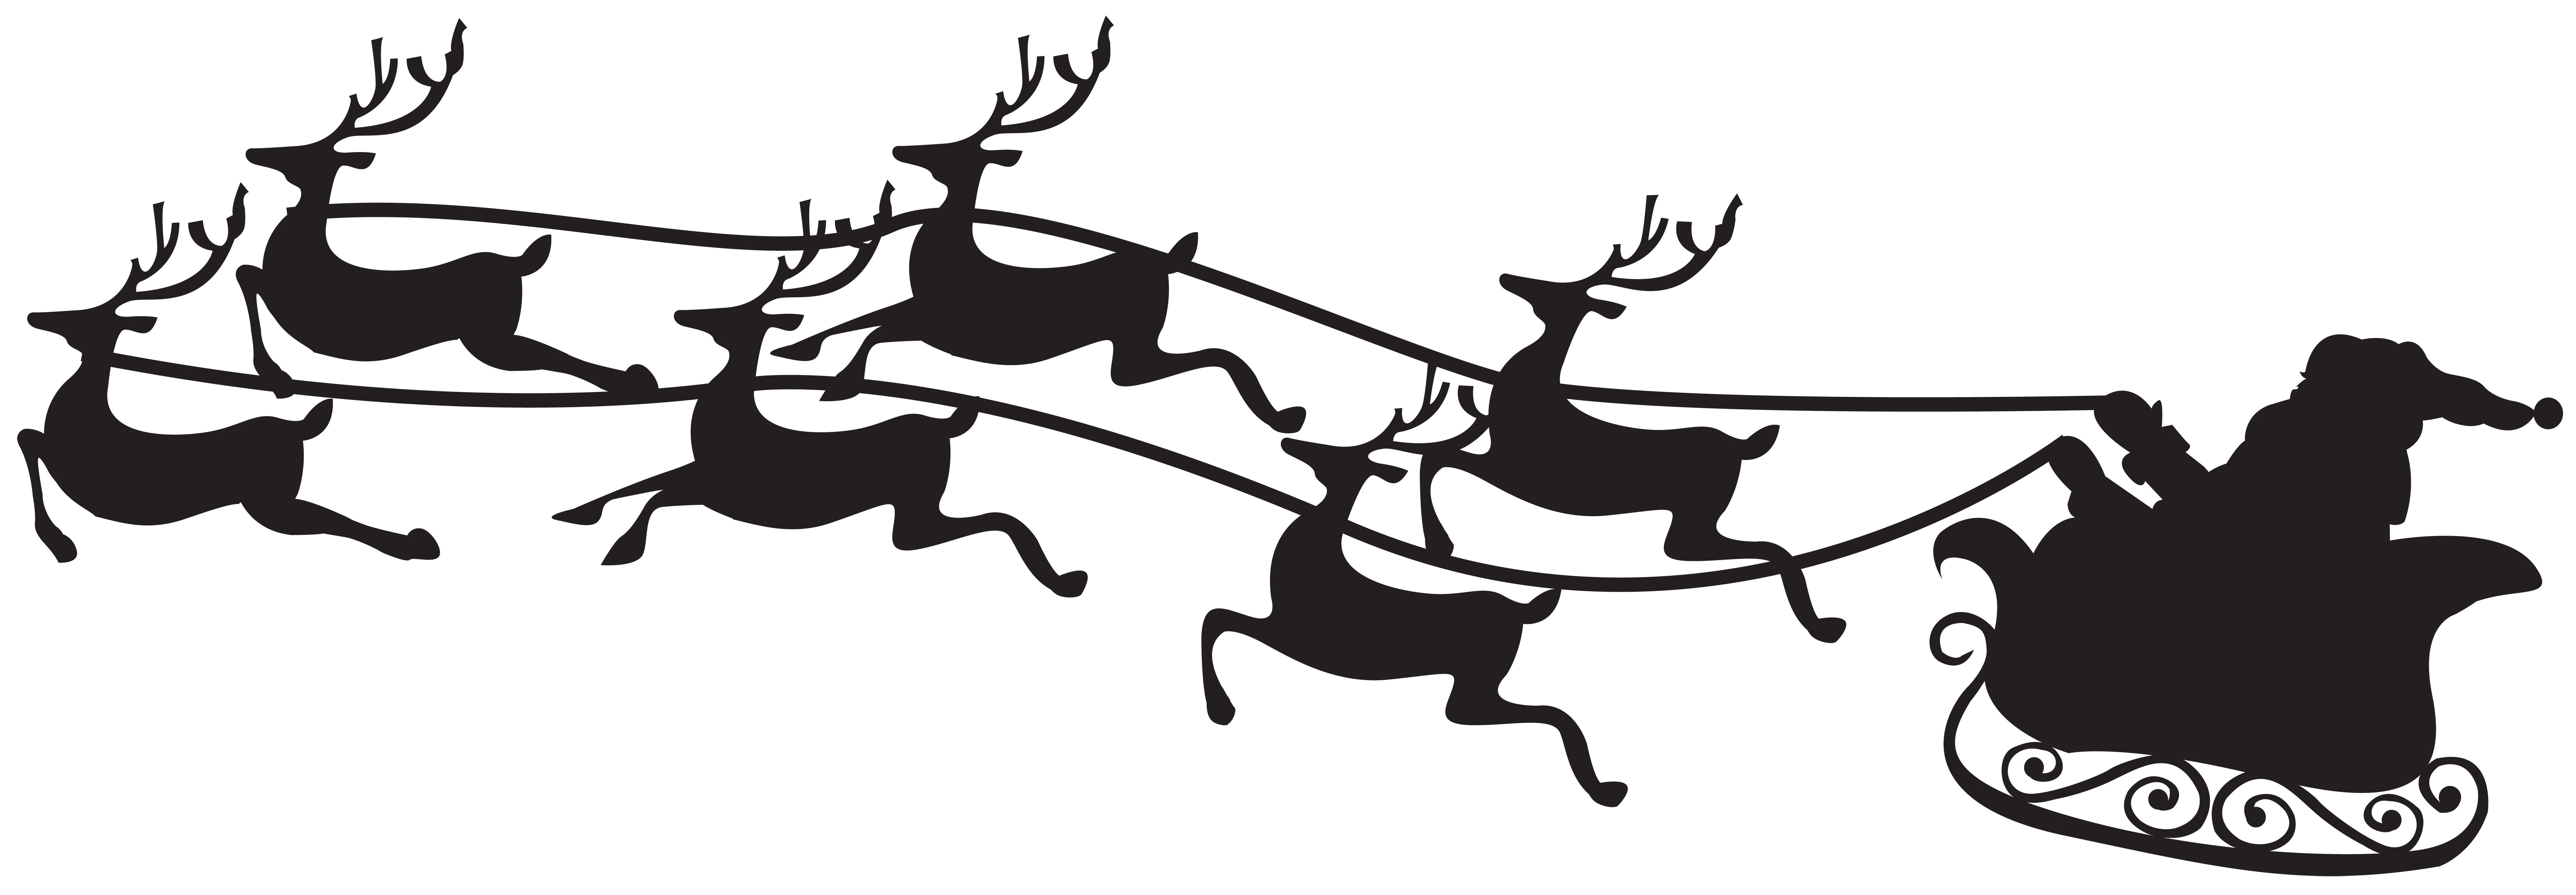 Santa on Sled Silhouette PNG Clip Art Image.